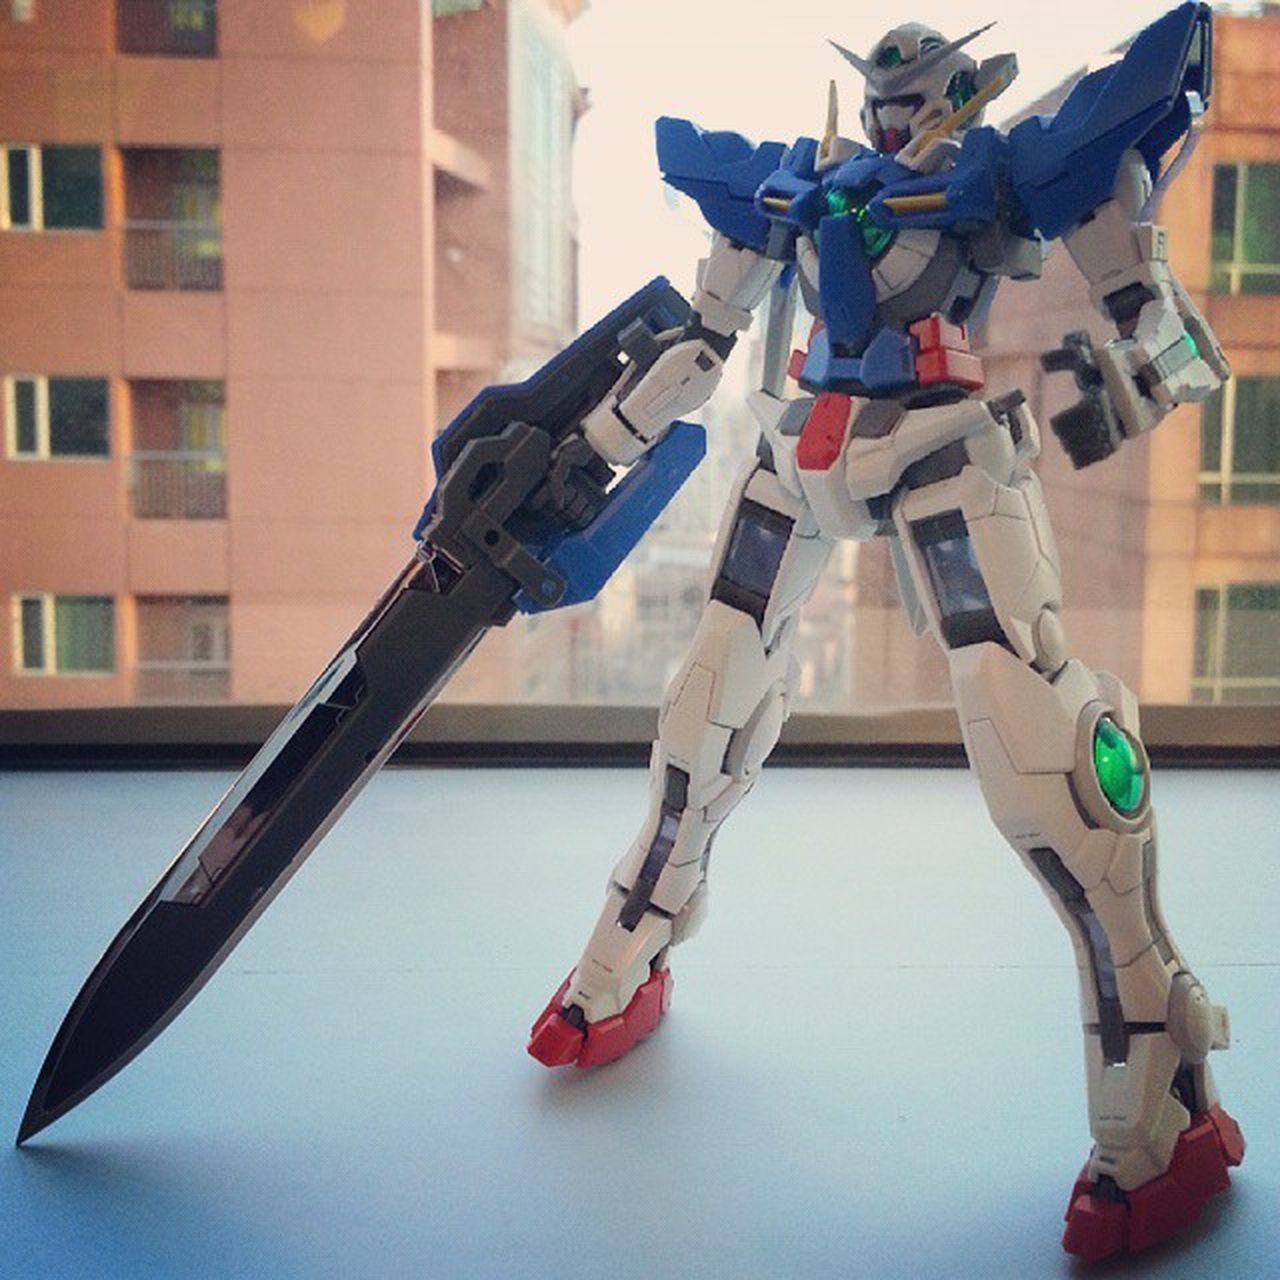 I remember the exhilaration seeing an image of the Gundam in tokyo, japan while browsing in the net. And brought this to life. Gundam Classictoys Scale  Iwanttogotojapan いちばん